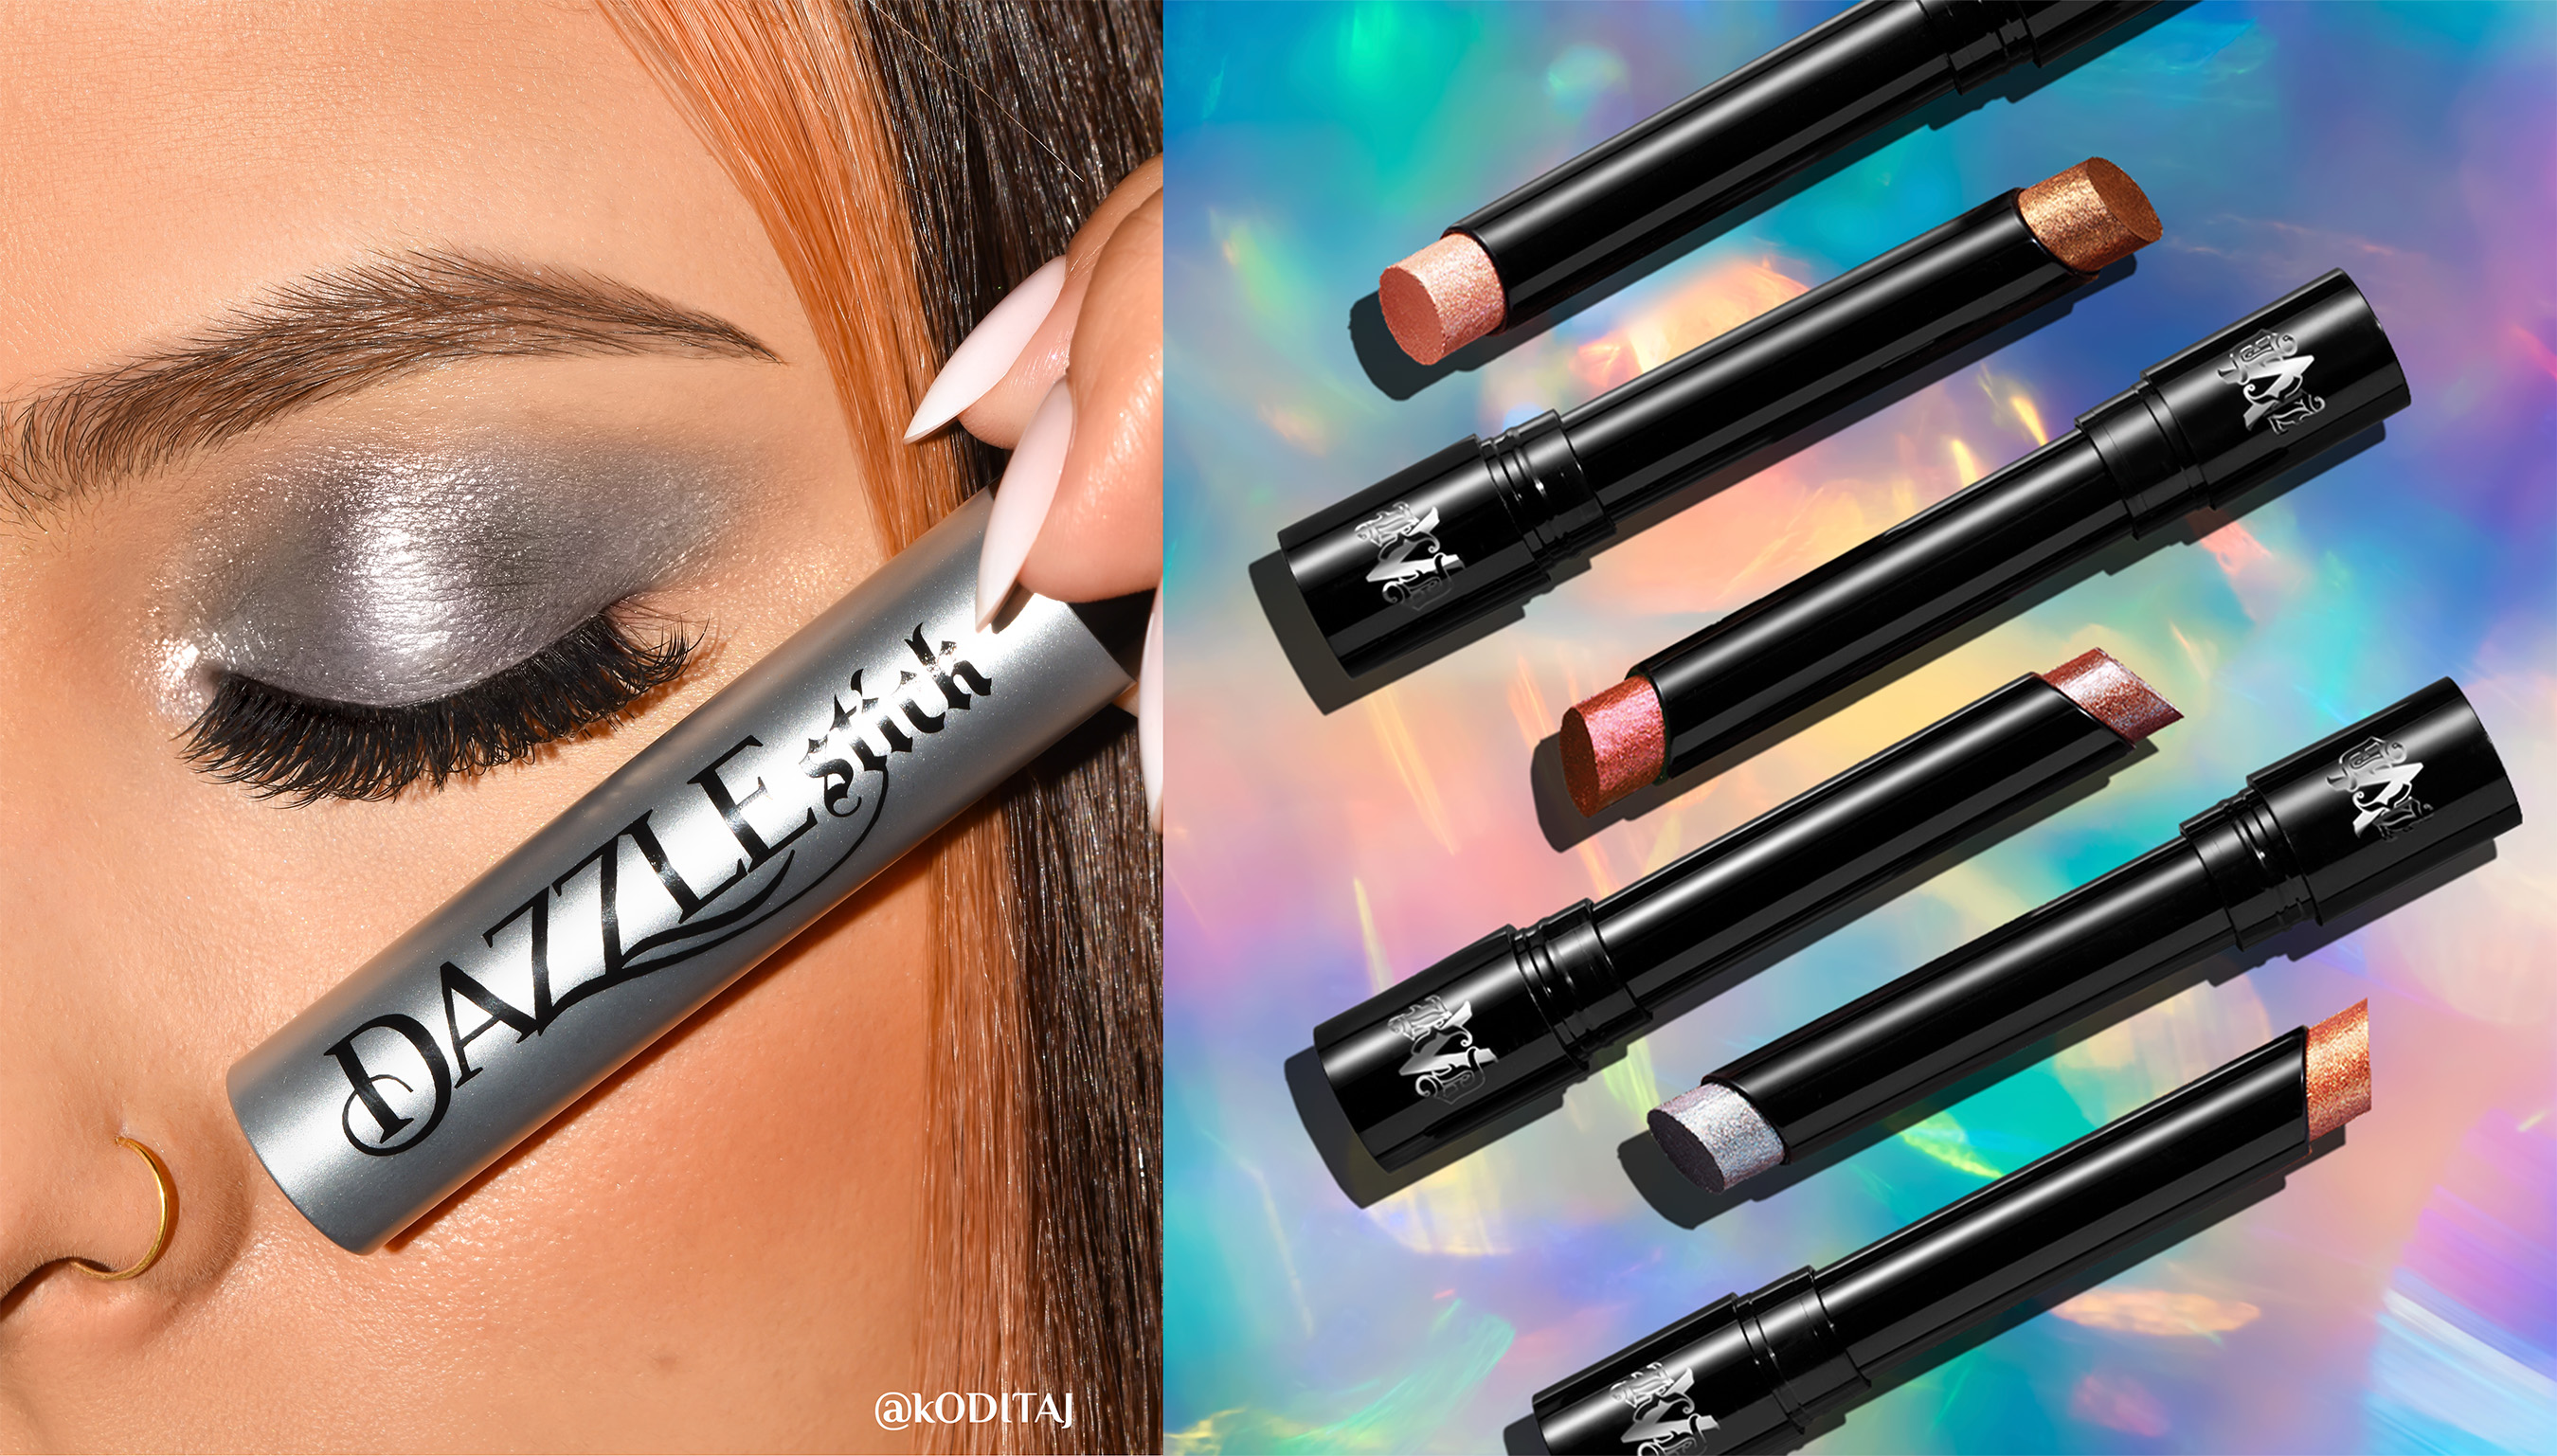 Dazzle Vegan Eyeshadow Sticks deliver multidimensional shimmering shadow in a flash, without the mess of loose glitter.